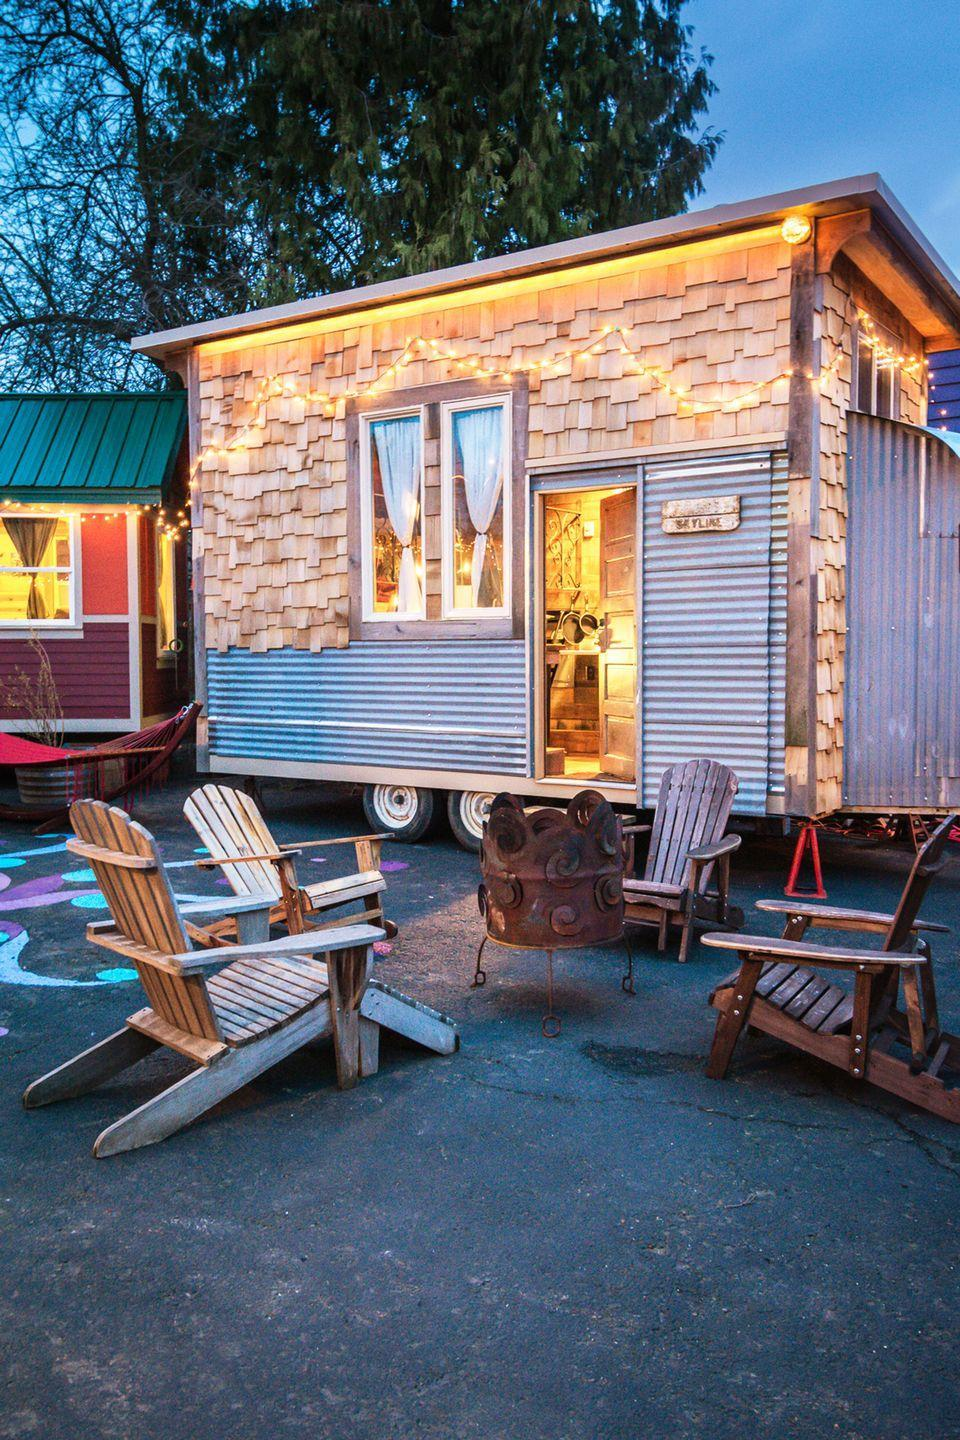 """<p>One of six tiny houses—each built on wheels and outfitted with a bathroom, kitchen, and sleeping loft—at <a href=""""https://tinyhousehotel.com/"""" rel=""""nofollow noopener"""" target=""""_blank"""" data-ylk=""""slk:Caravan Tiny House Hotel"""" class=""""link rapid-noclick-resp"""">Caravan Tiny House Hotel</a> in Portland, Oregon, the <a href=""""https://tinyhousehotel.com/the-tiny-houses/skyline/"""" rel=""""nofollow noopener"""" target=""""_blank"""" data-ylk=""""slk:Skyline"""" class=""""link rapid-noclick-resp"""">Skyline</a> cabin is one of the newest additions to the hotel. The 160-square-foot structure is constructed of mostly salvaged materials and houses two queen beds. Rental rates are $125 per night.</p><p><a class=""""link rapid-noclick-resp"""" href=""""https://go.redirectingat.com?id=74968X1596630&url=https%3A%2F%2Fwww.tripadvisor.com%2FHotel_Review-g52024-d4582522-Reviews-Caravan_The_Tiny_House_Hotel-Portland_Oregon.html&sref=https%3A%2F%2Fwww.oprahdaily.com%2Flife%2Fg35047961%2Ftiny-house%2F"""" rel=""""nofollow noopener"""" target=""""_blank"""" data-ylk=""""slk:PLAN YOUR TRIP"""">PLAN YOUR TRIP</a><br></p>"""